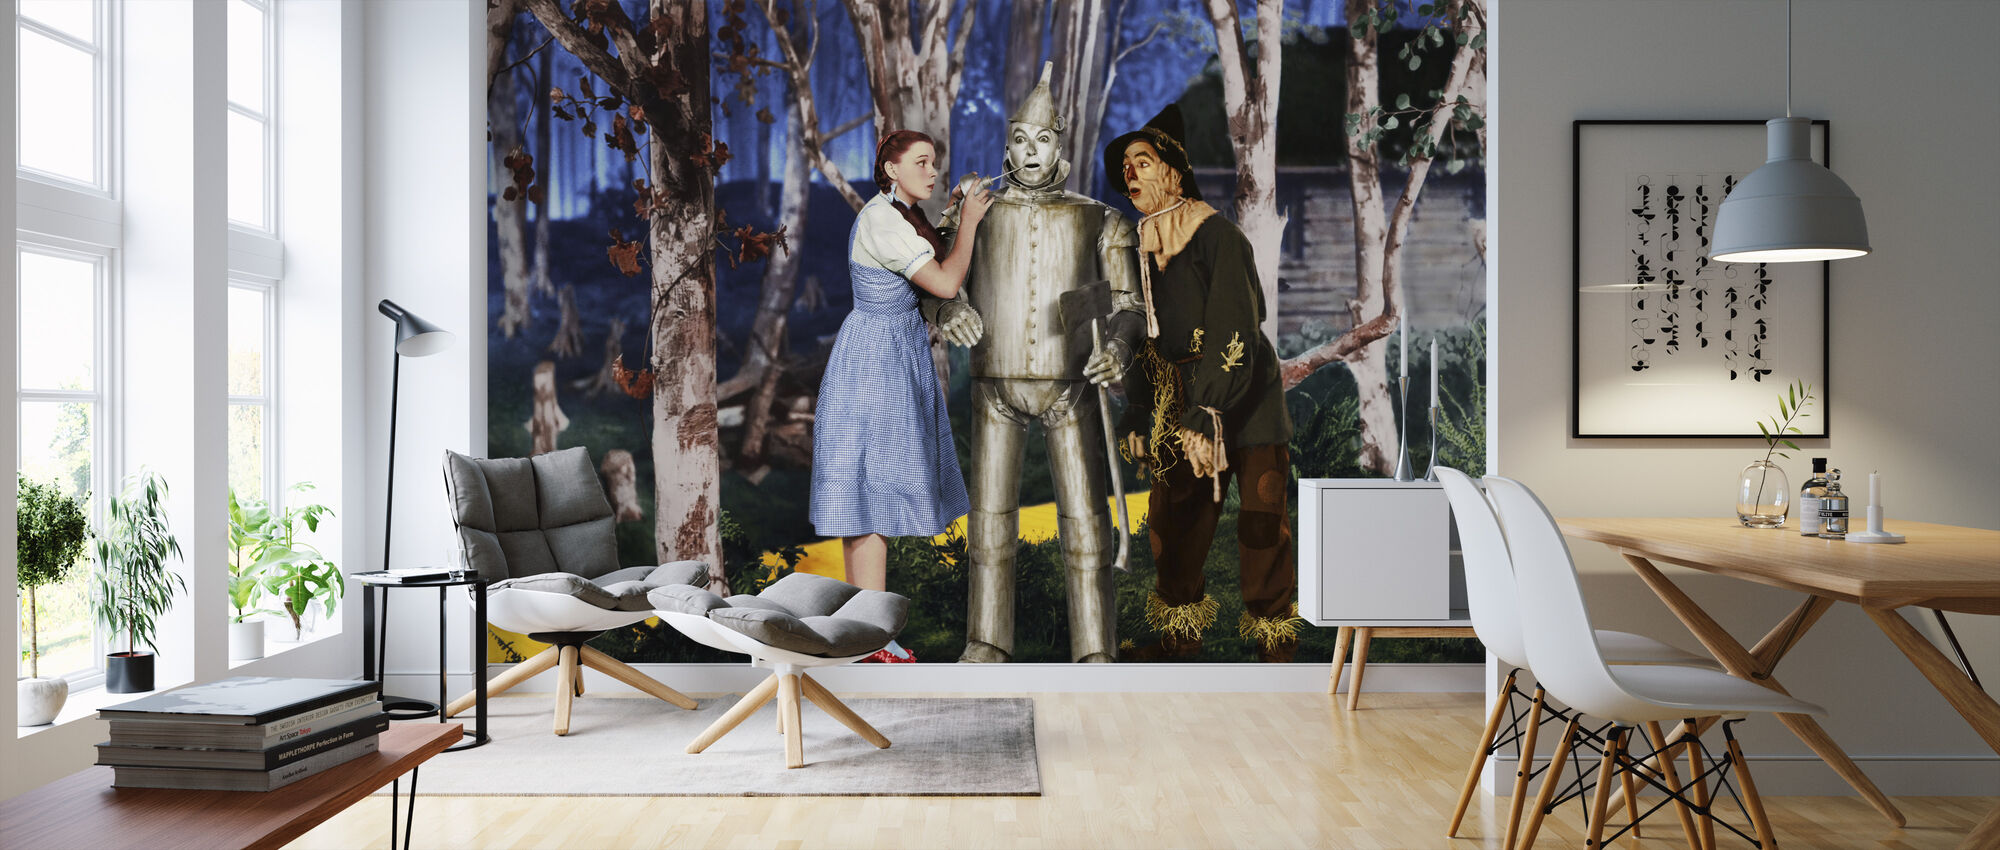 Wizard of Oz - Jack Haley Judy Garland and Ray Bolger - Wallpaper - Living Room